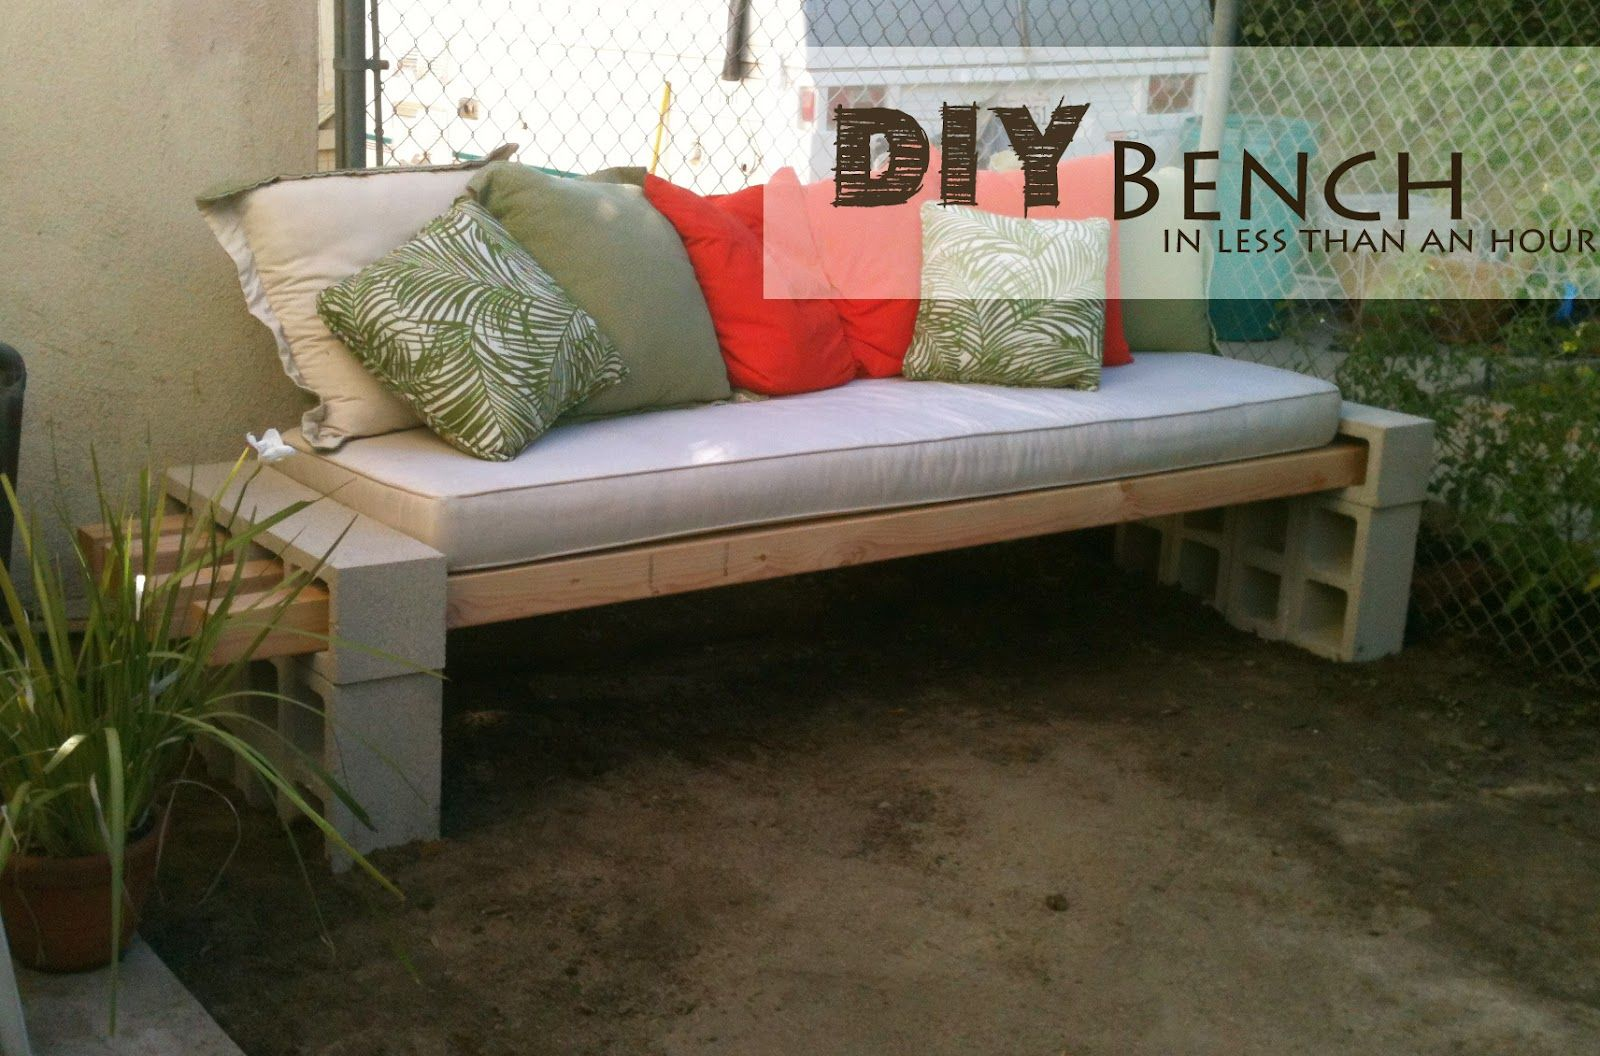 Easy diy outdoor table perfect table diy bench throughout easy diy easy diy outdoor table perfect table diy bench throughout easy diy outdoor table i watchthetrailerfo